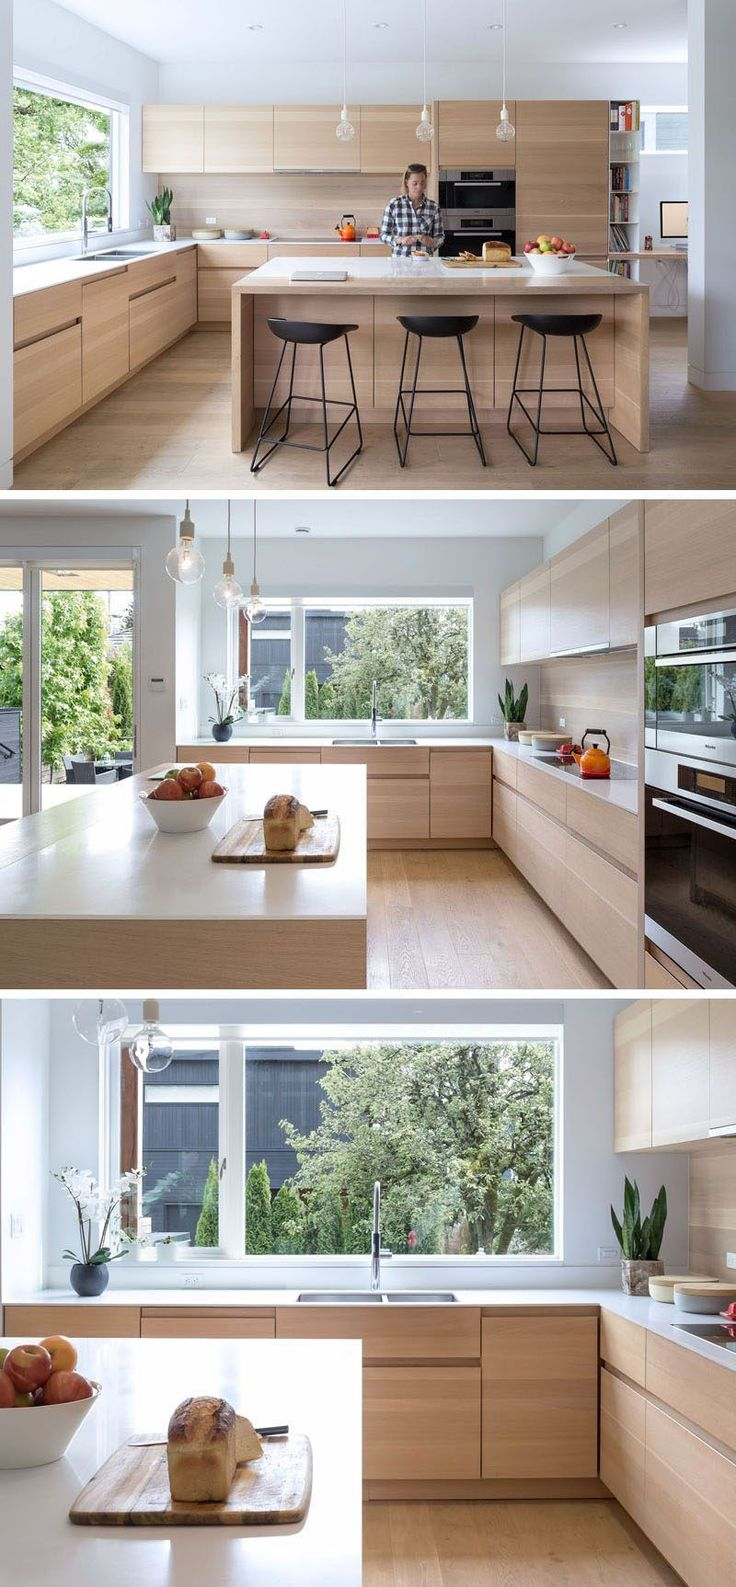 Mueble de cocina topper ideas - In This Kitchen A Large Window Provides Lots Of Natural Light To The Mostly Wooden